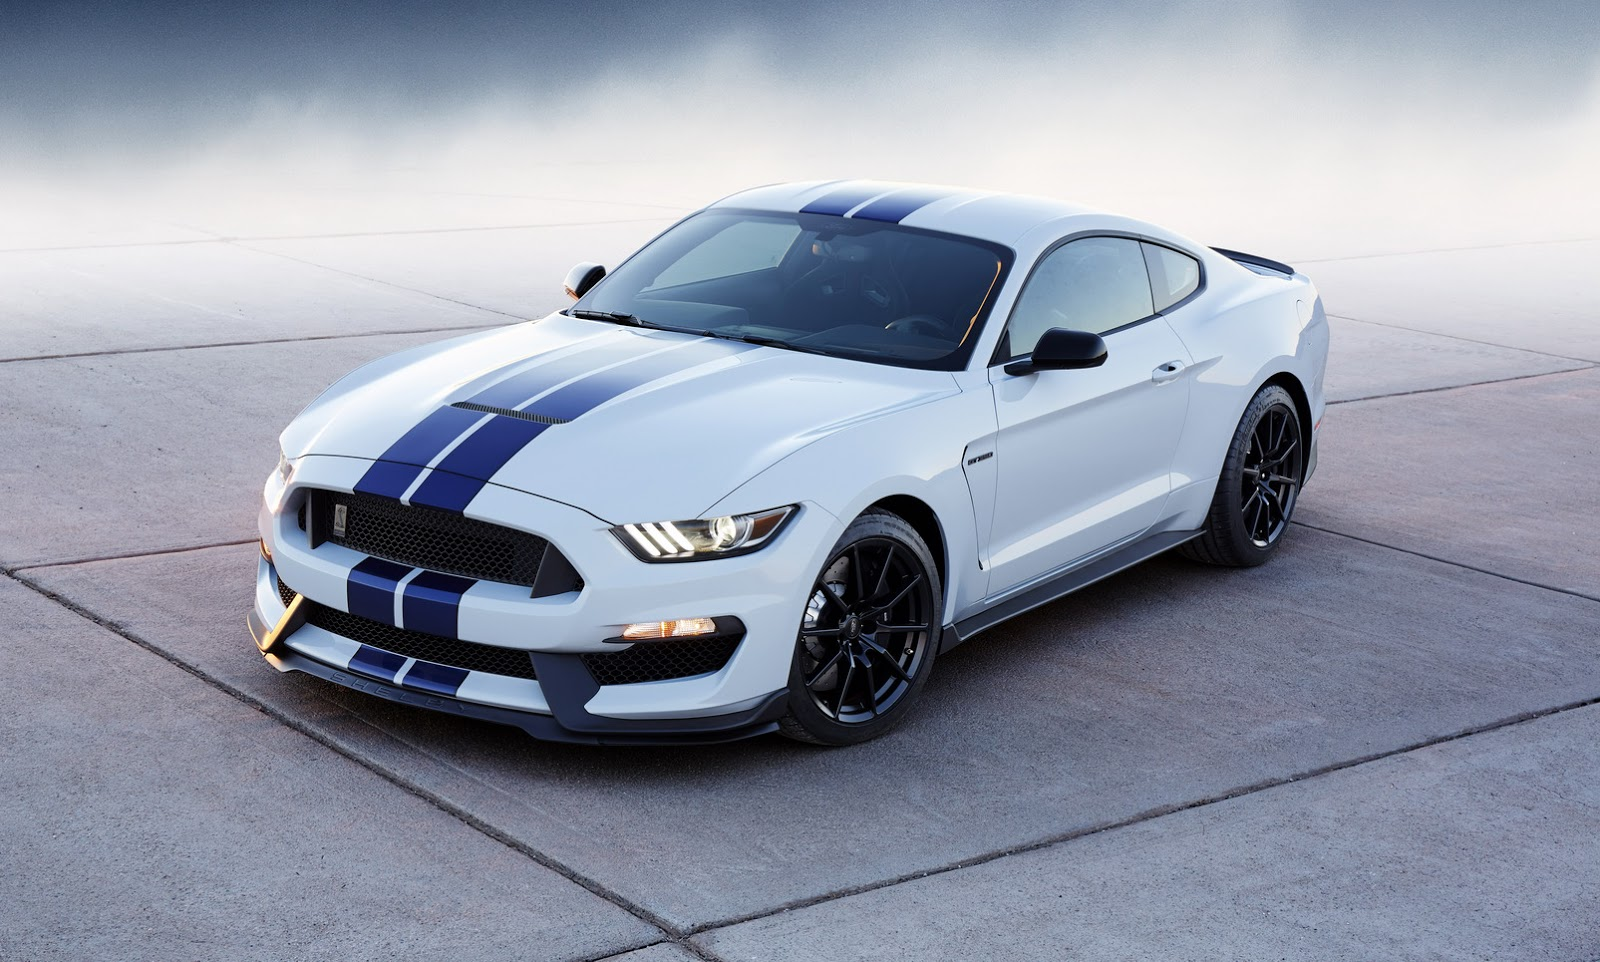 ford mustang india launch allegedly confirmed for this year motoroids. Black Bedroom Furniture Sets. Home Design Ideas